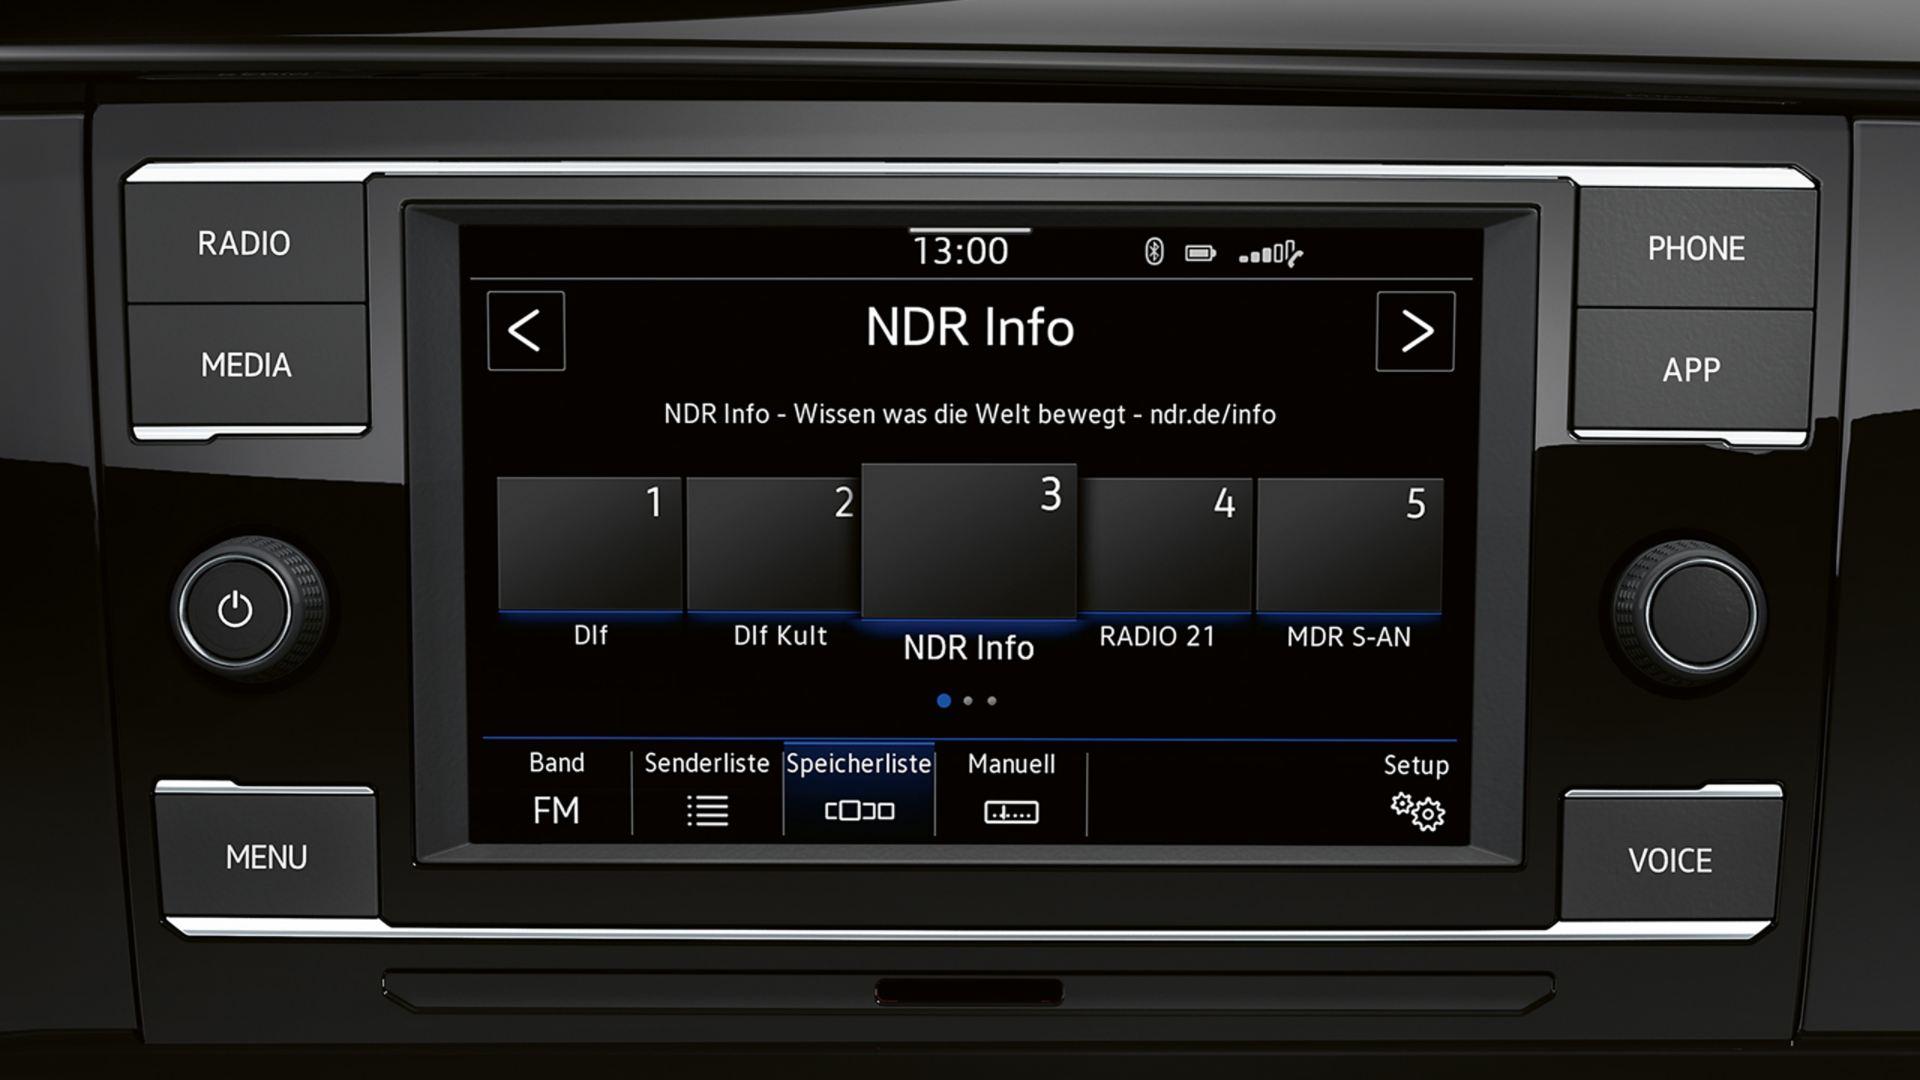 "Radiosystem ""Composition Colour"" auf dem Display des VW Multivan 6.1"